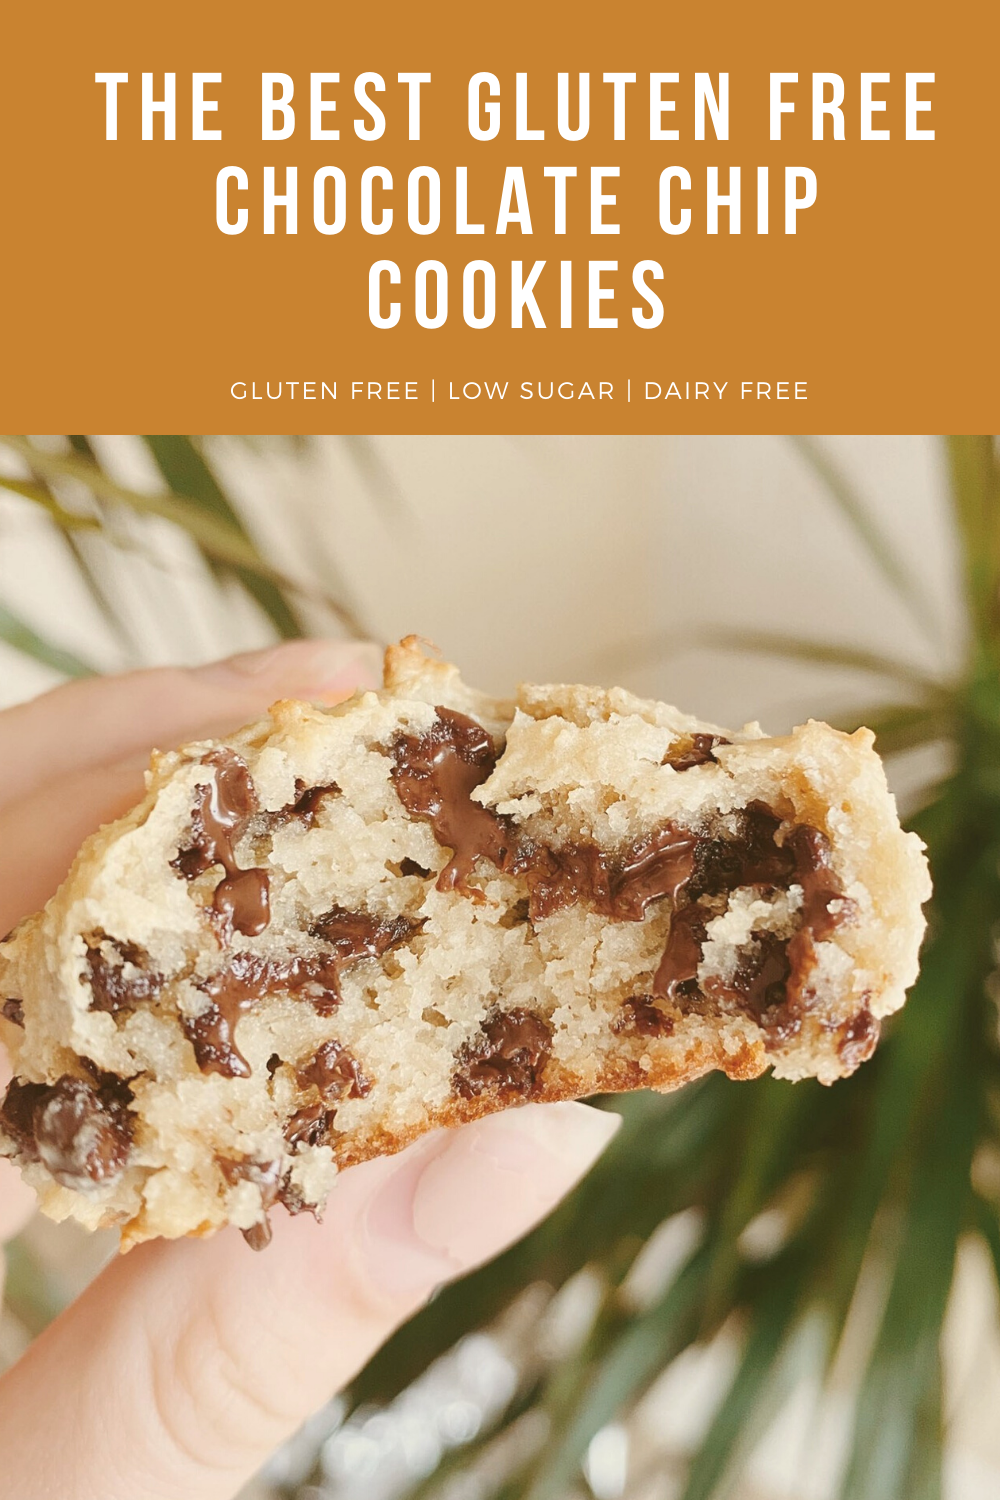 DAIRY FREE, GLUTEN FREE, LOW SUGAR; These are the chewiest, fluffiest cookies you'll ever have and they're gluten free! No refined sugars, minimal ingredients, and so delicious. #glutenfree #glutenfreecookies #glutenfreechocolatechipcookies #cookierecipes #glutenfreecookies #cookierecipe #chewycookies #chocolatechip #paleocookies #thebestcookies #healthycookies #healthycollegestudent #collegerecipes